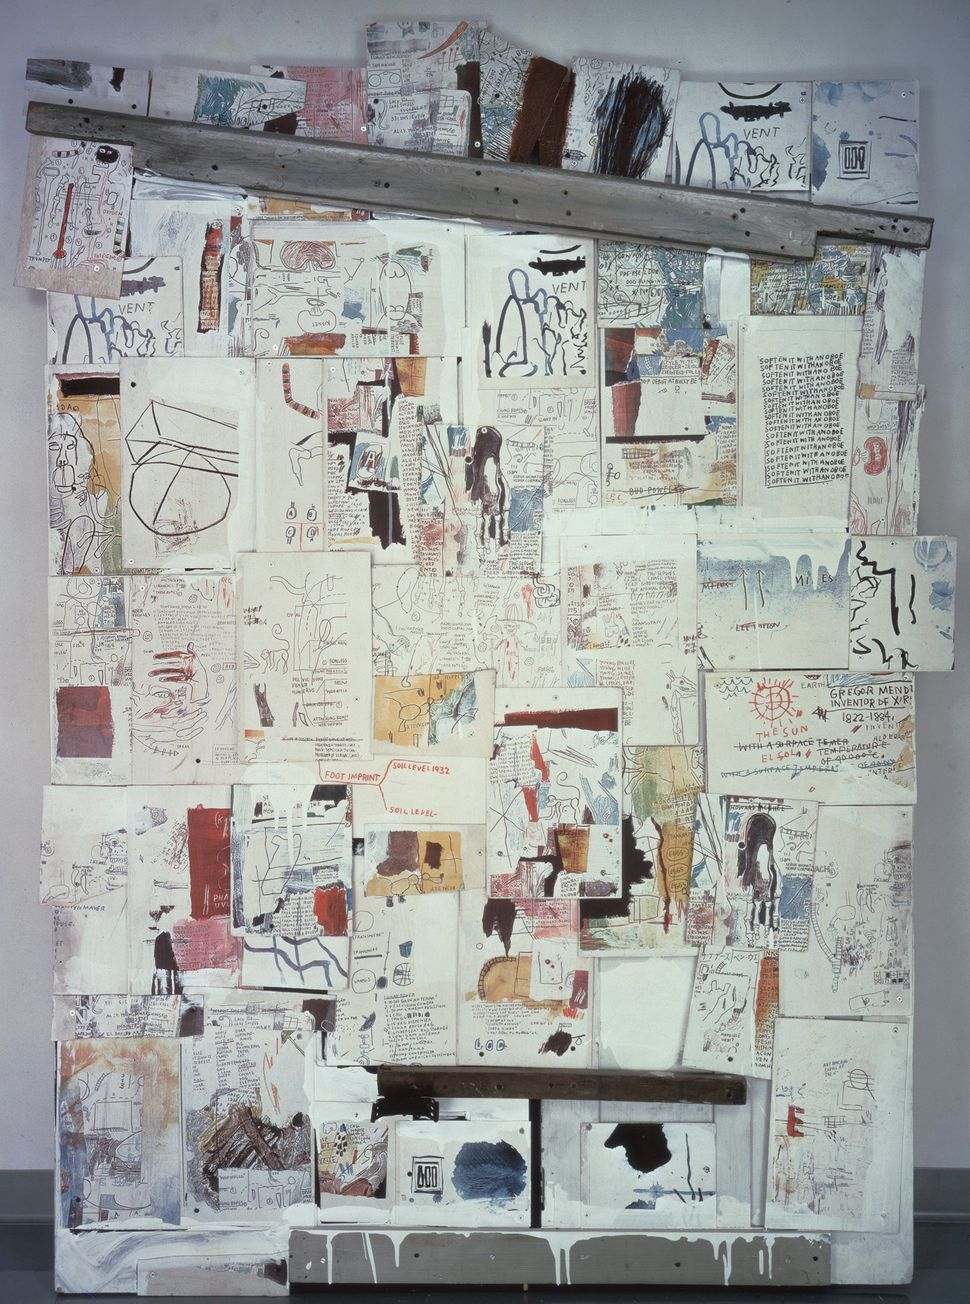 "Jean-Michel Basquiat  Natchez, 1985 Acrylic, wood and color xeroxes on plywood mounted on wooden doors 85"" x 60.63"" x 4"" Gale"